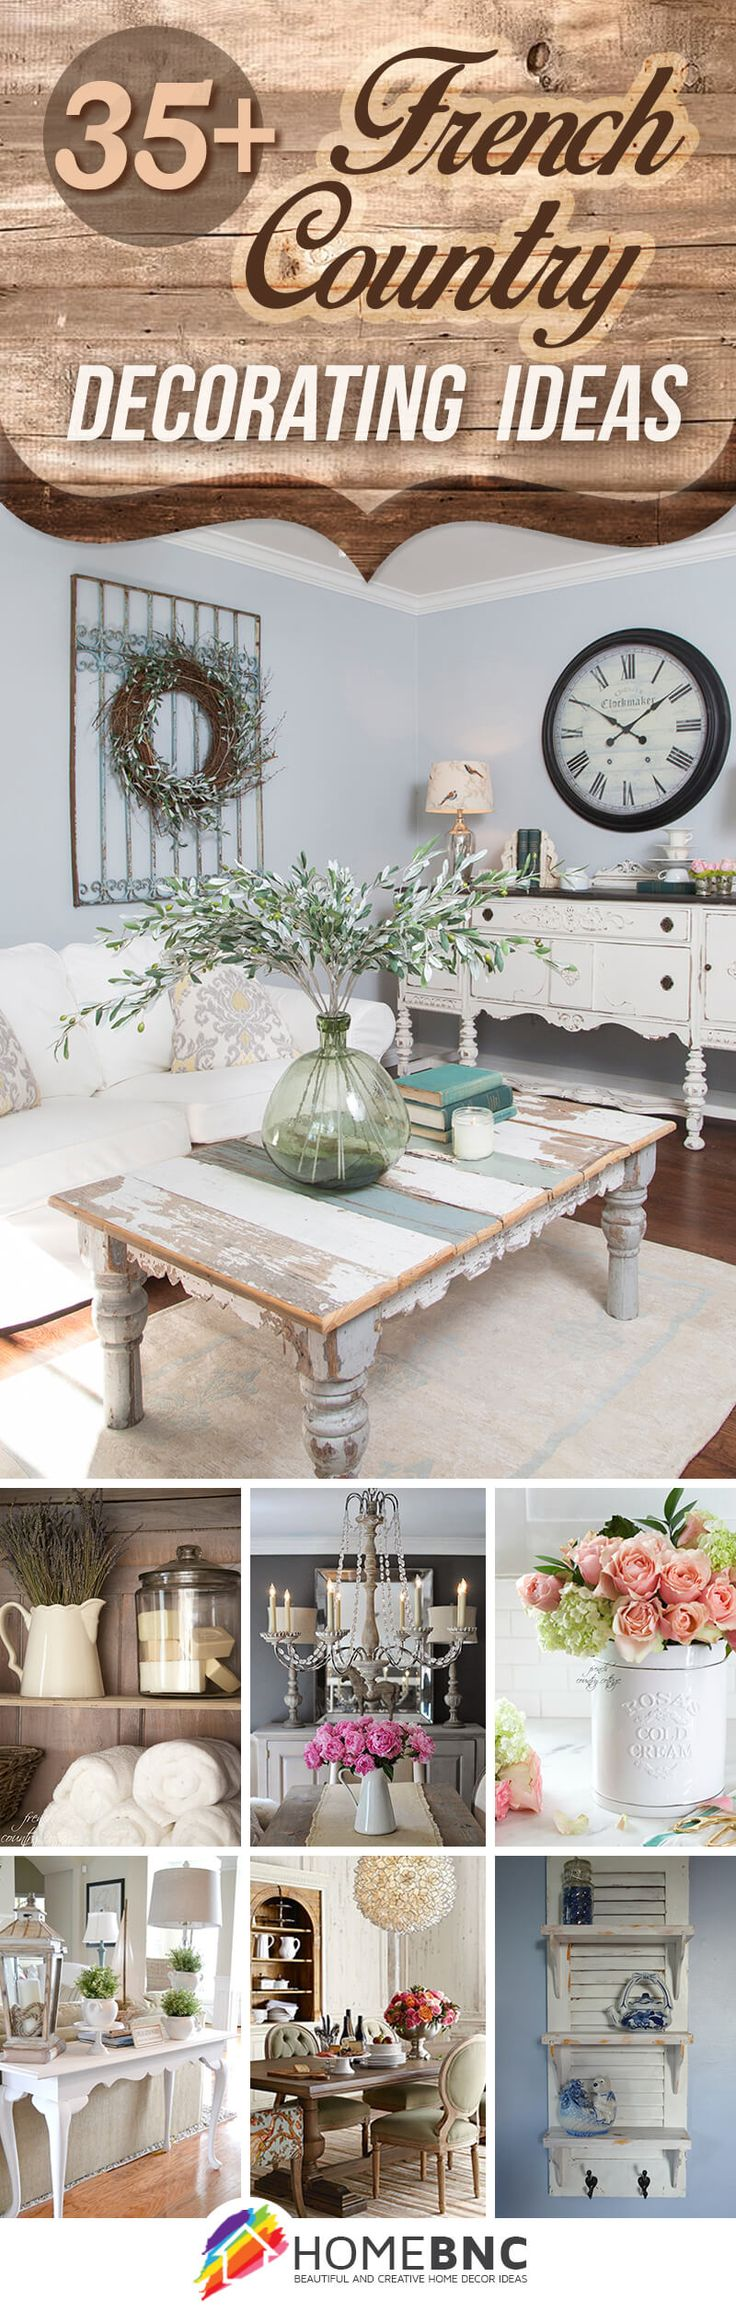 Best 25 french country decorating ideas on pinterest for Country home decorating ideas pinterest